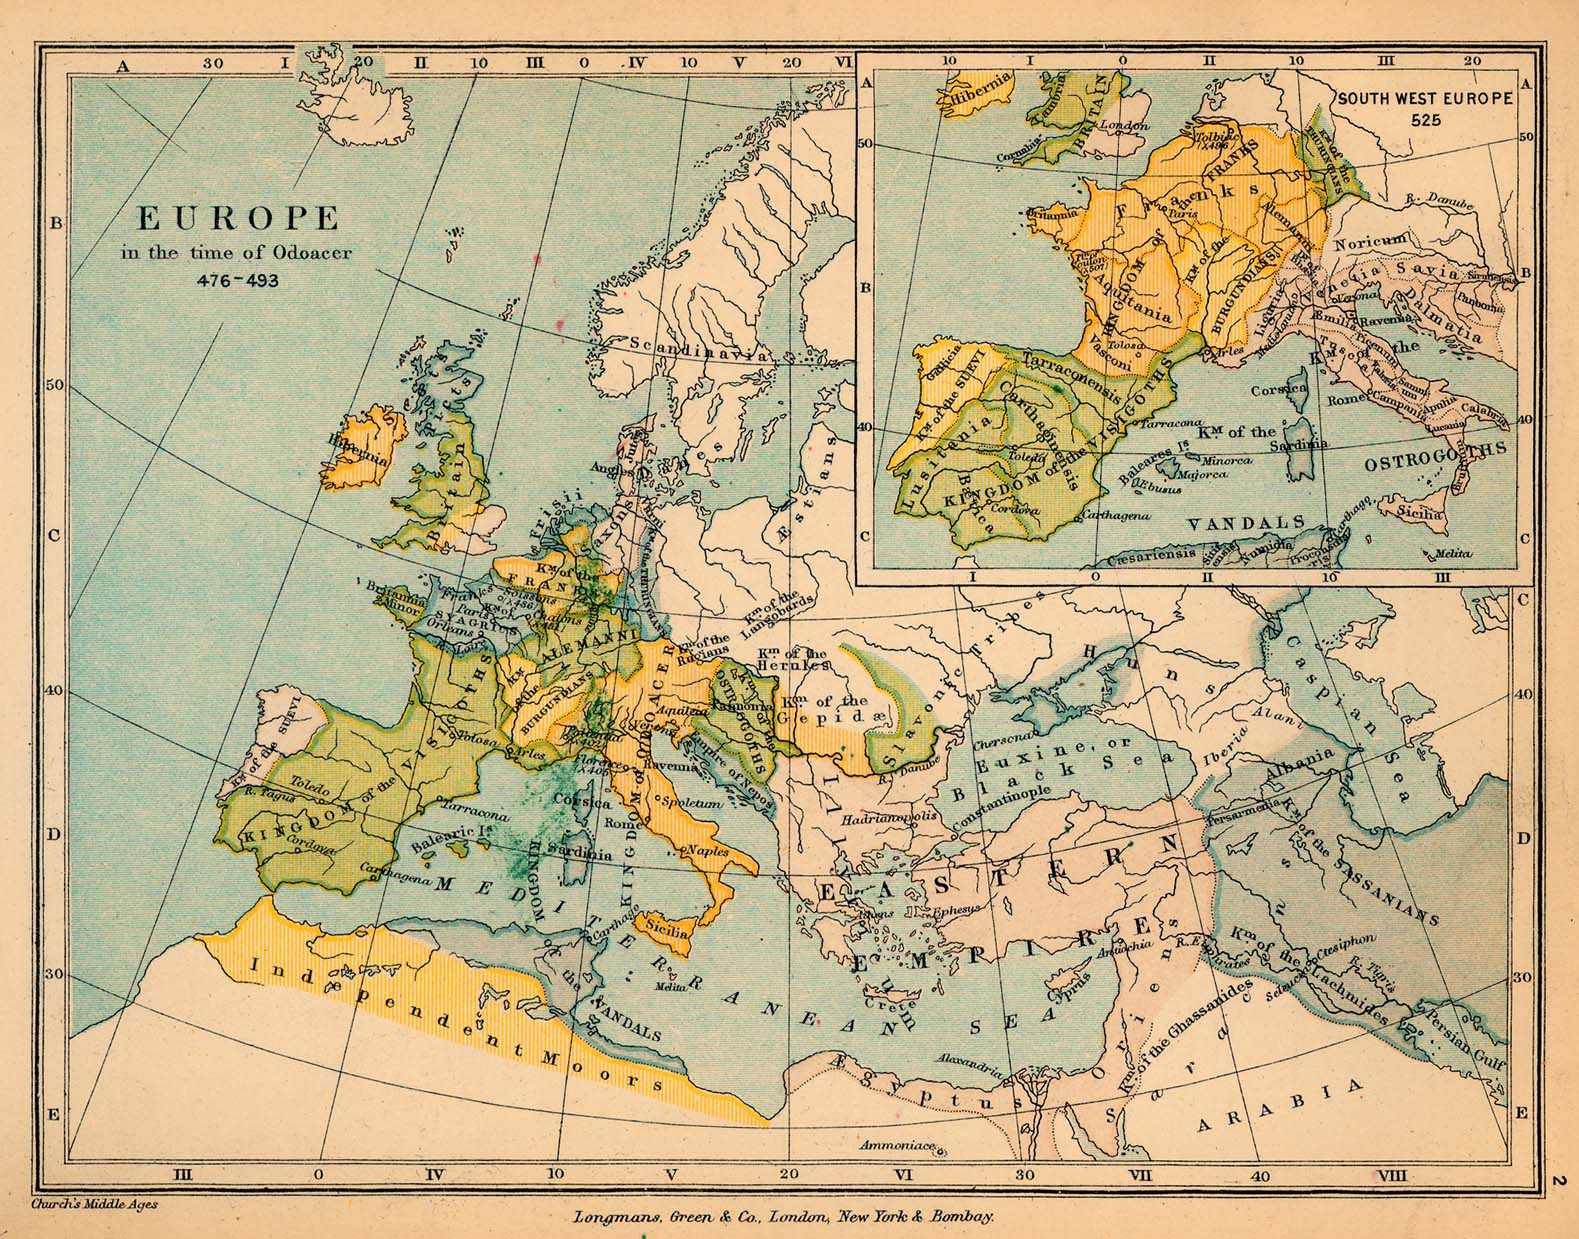 Europe in the time of Odoacer, 476-493